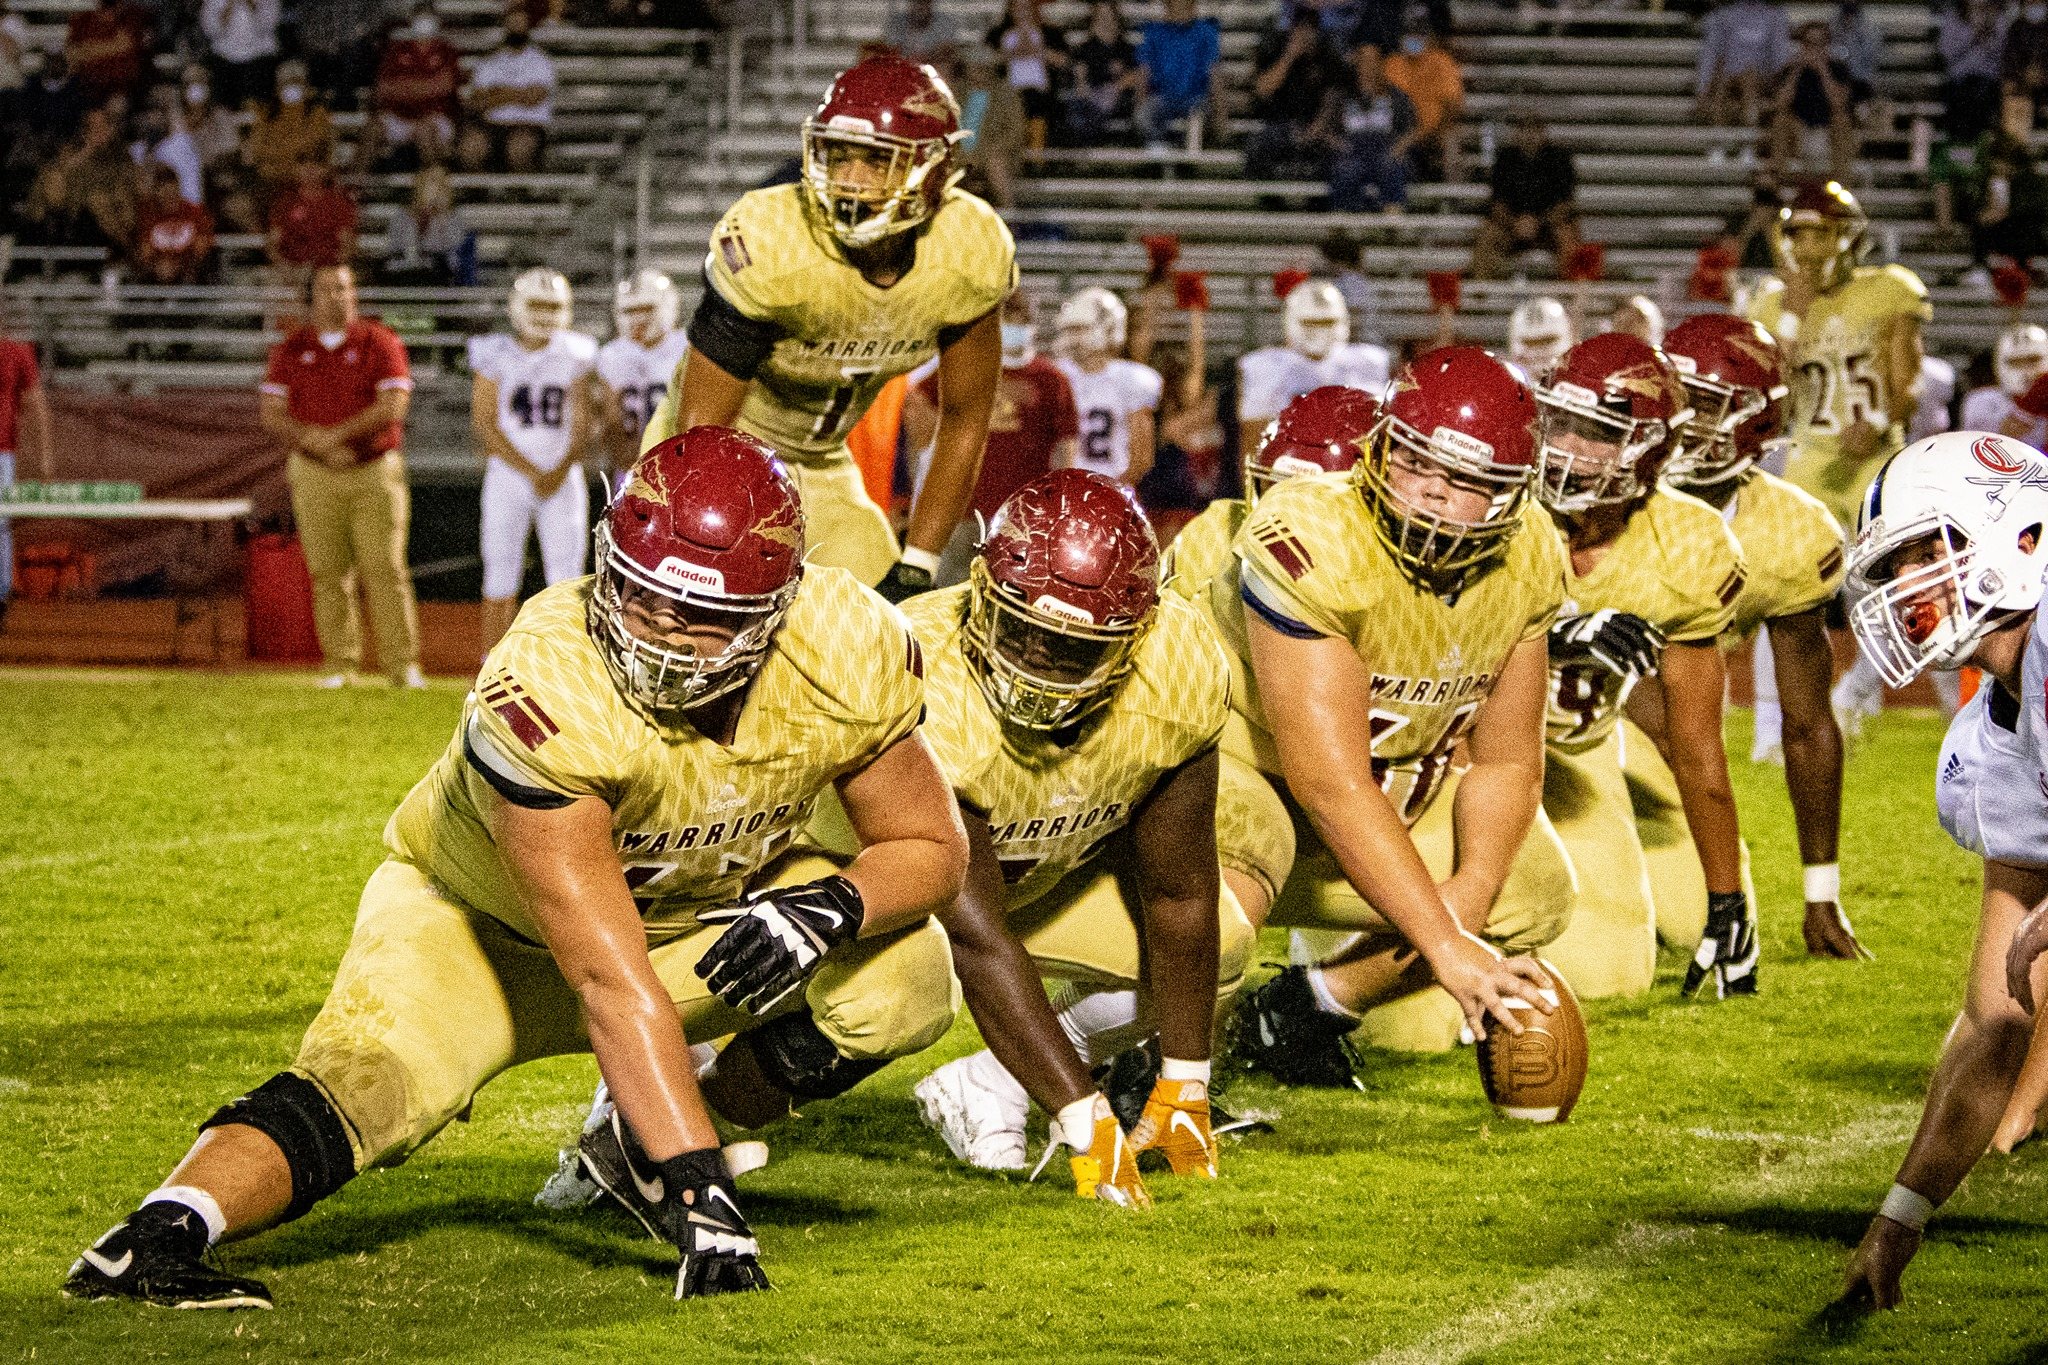 2021 Great American Rivalry Series Continues Friday in Murfreesboro